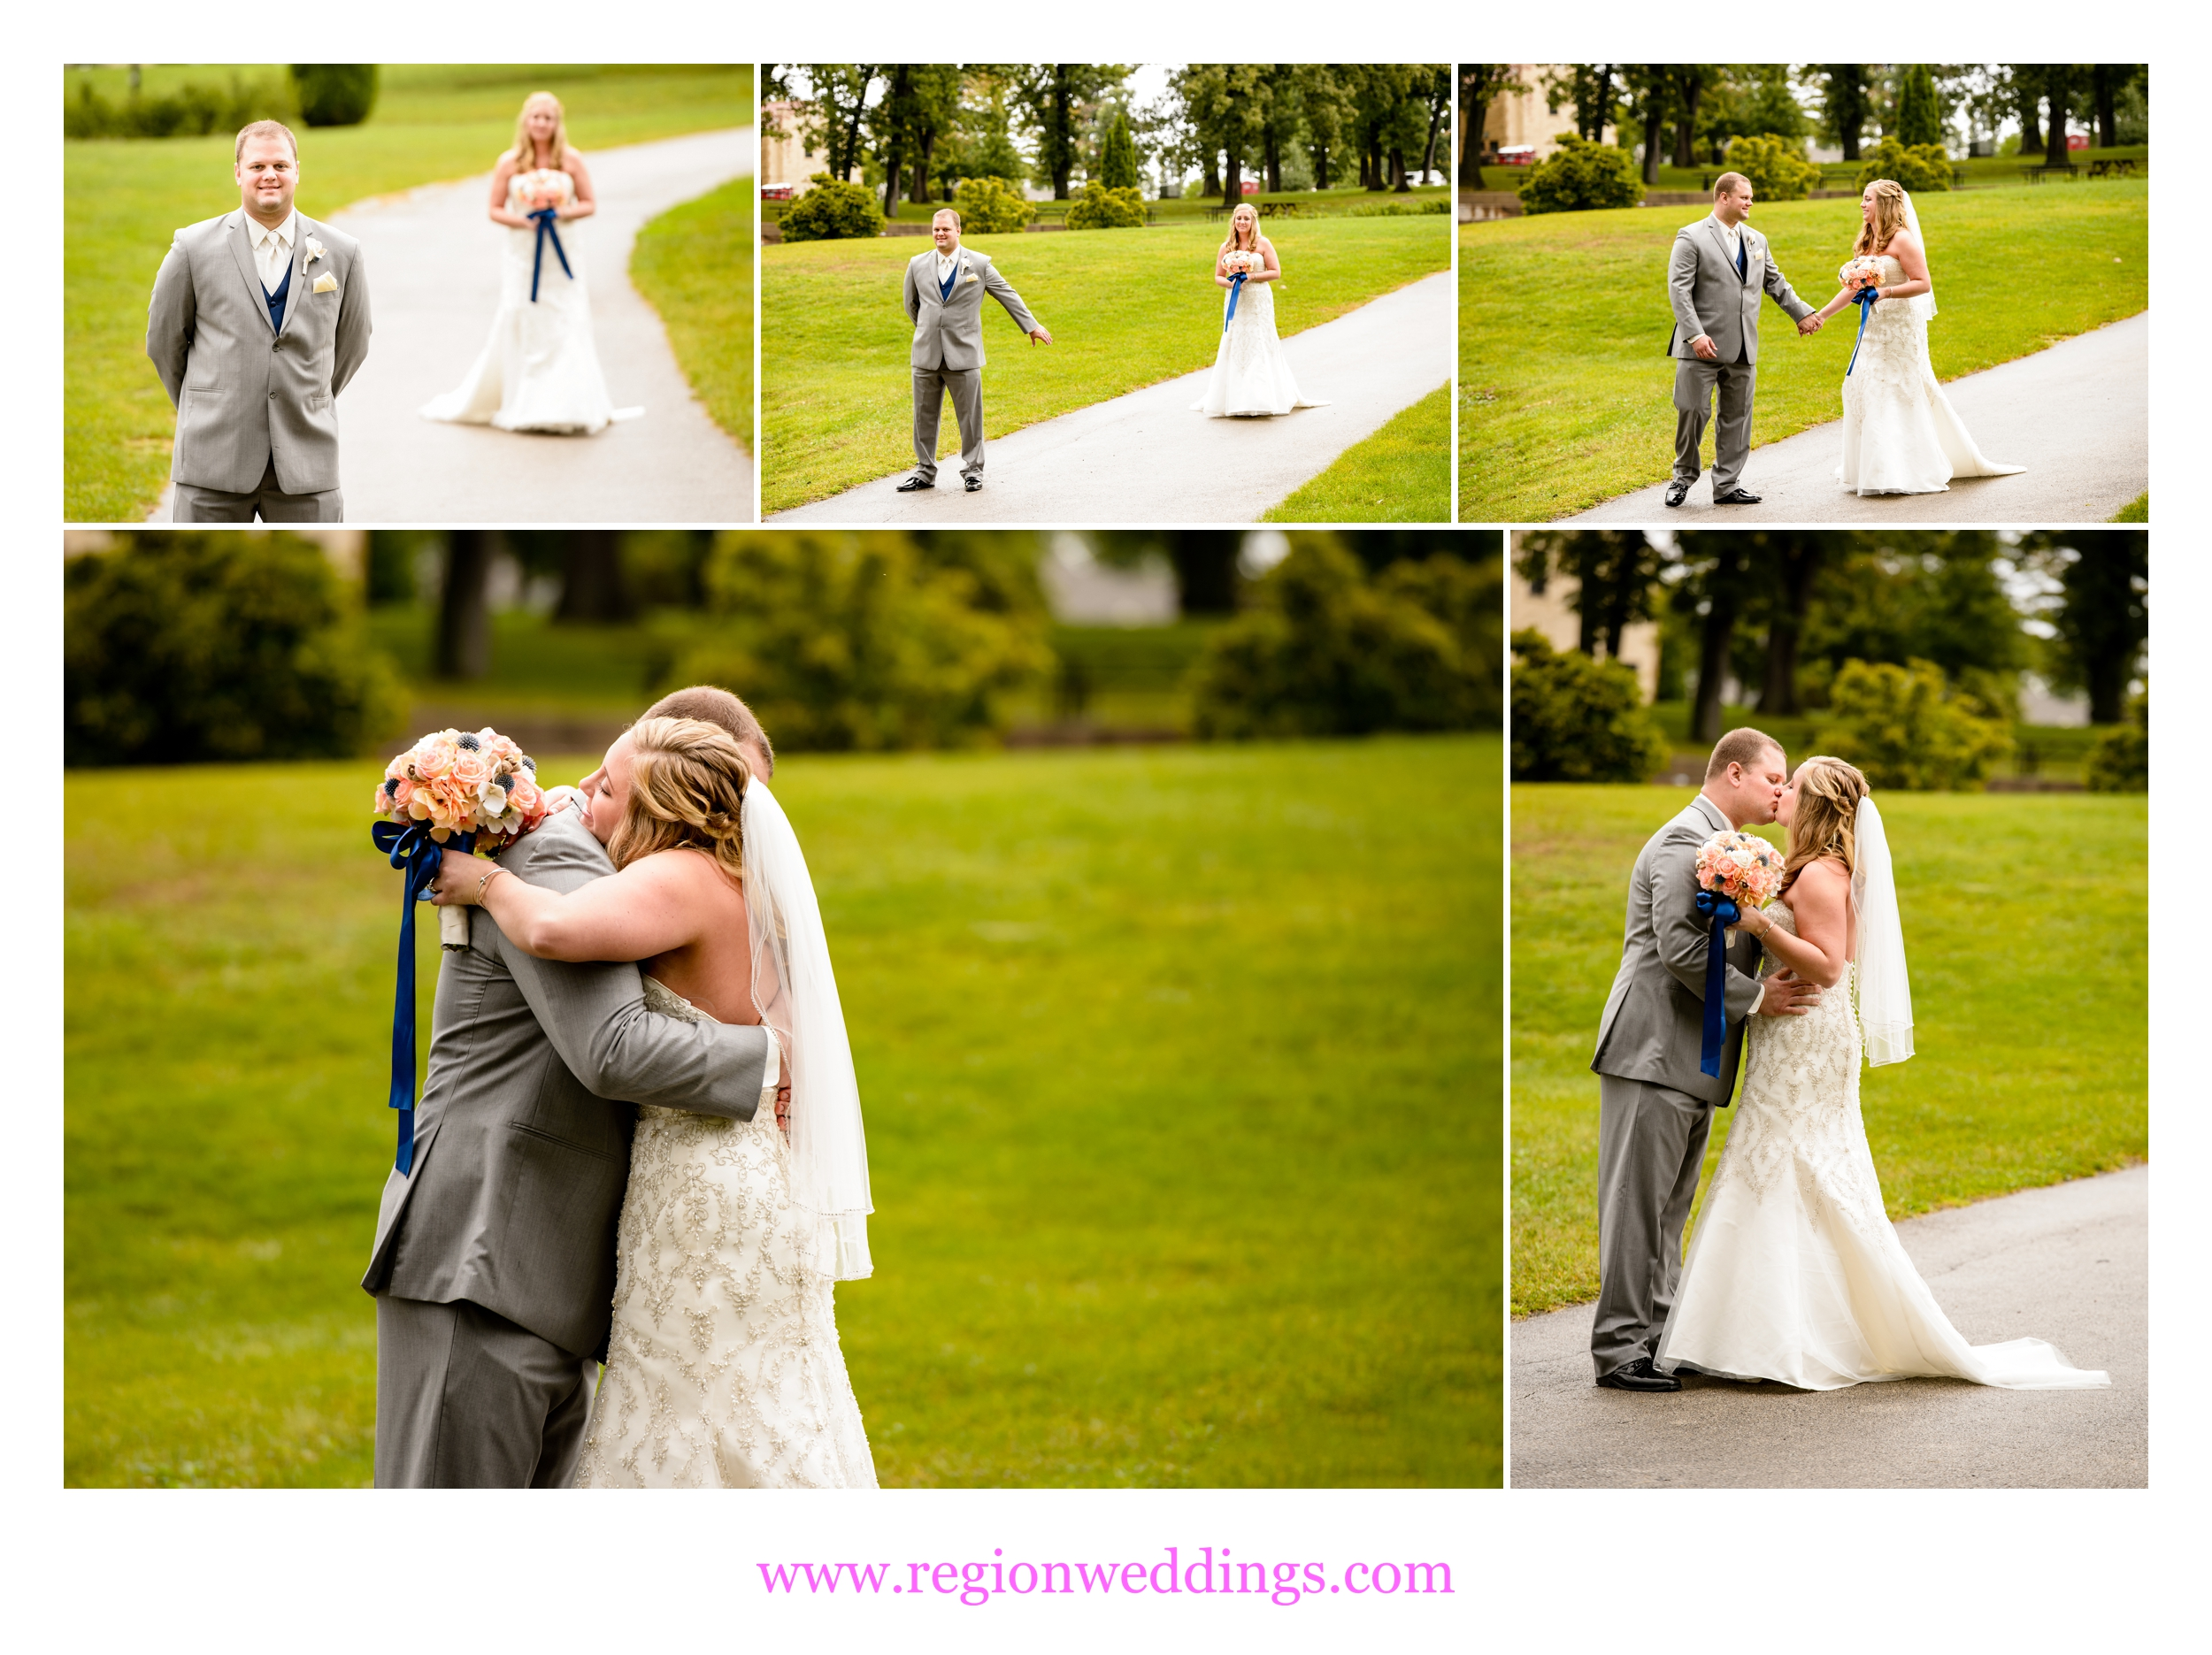 First look for the bride and groom at Lake Hills Clubhouse in St. John, Indiana.